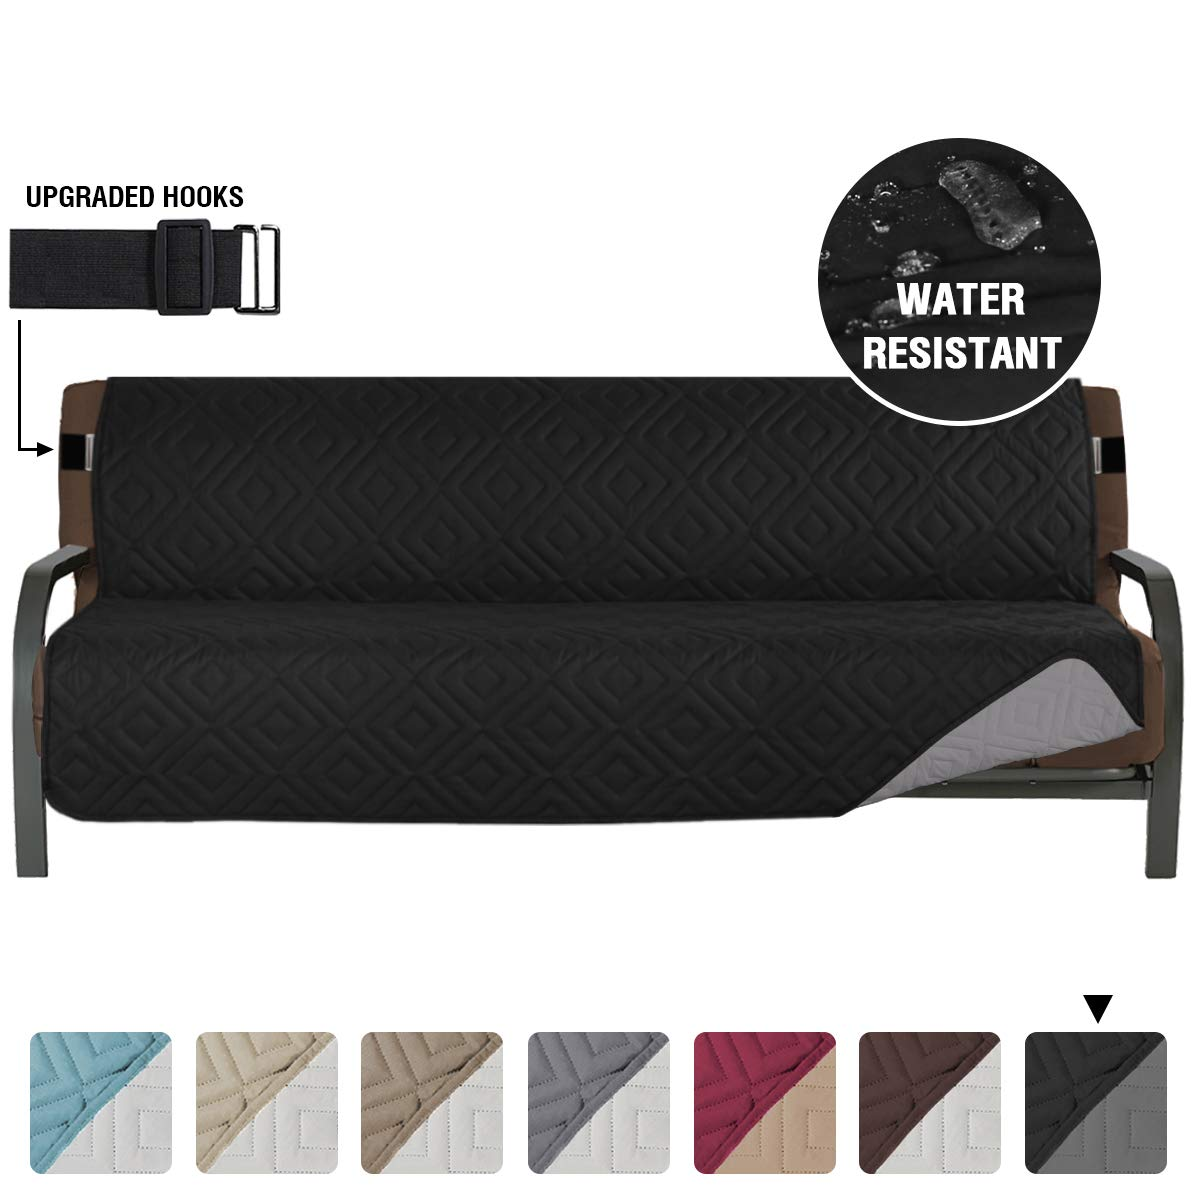 Armless Futon Cover Futon Slipcover Full Queen Size Futon Couch Cover Futon Sofa Cover Futon Bed Cover Furniture Protector Water Repellent Soft Thick Quilted Reversible Seat Width 70 Black Grey